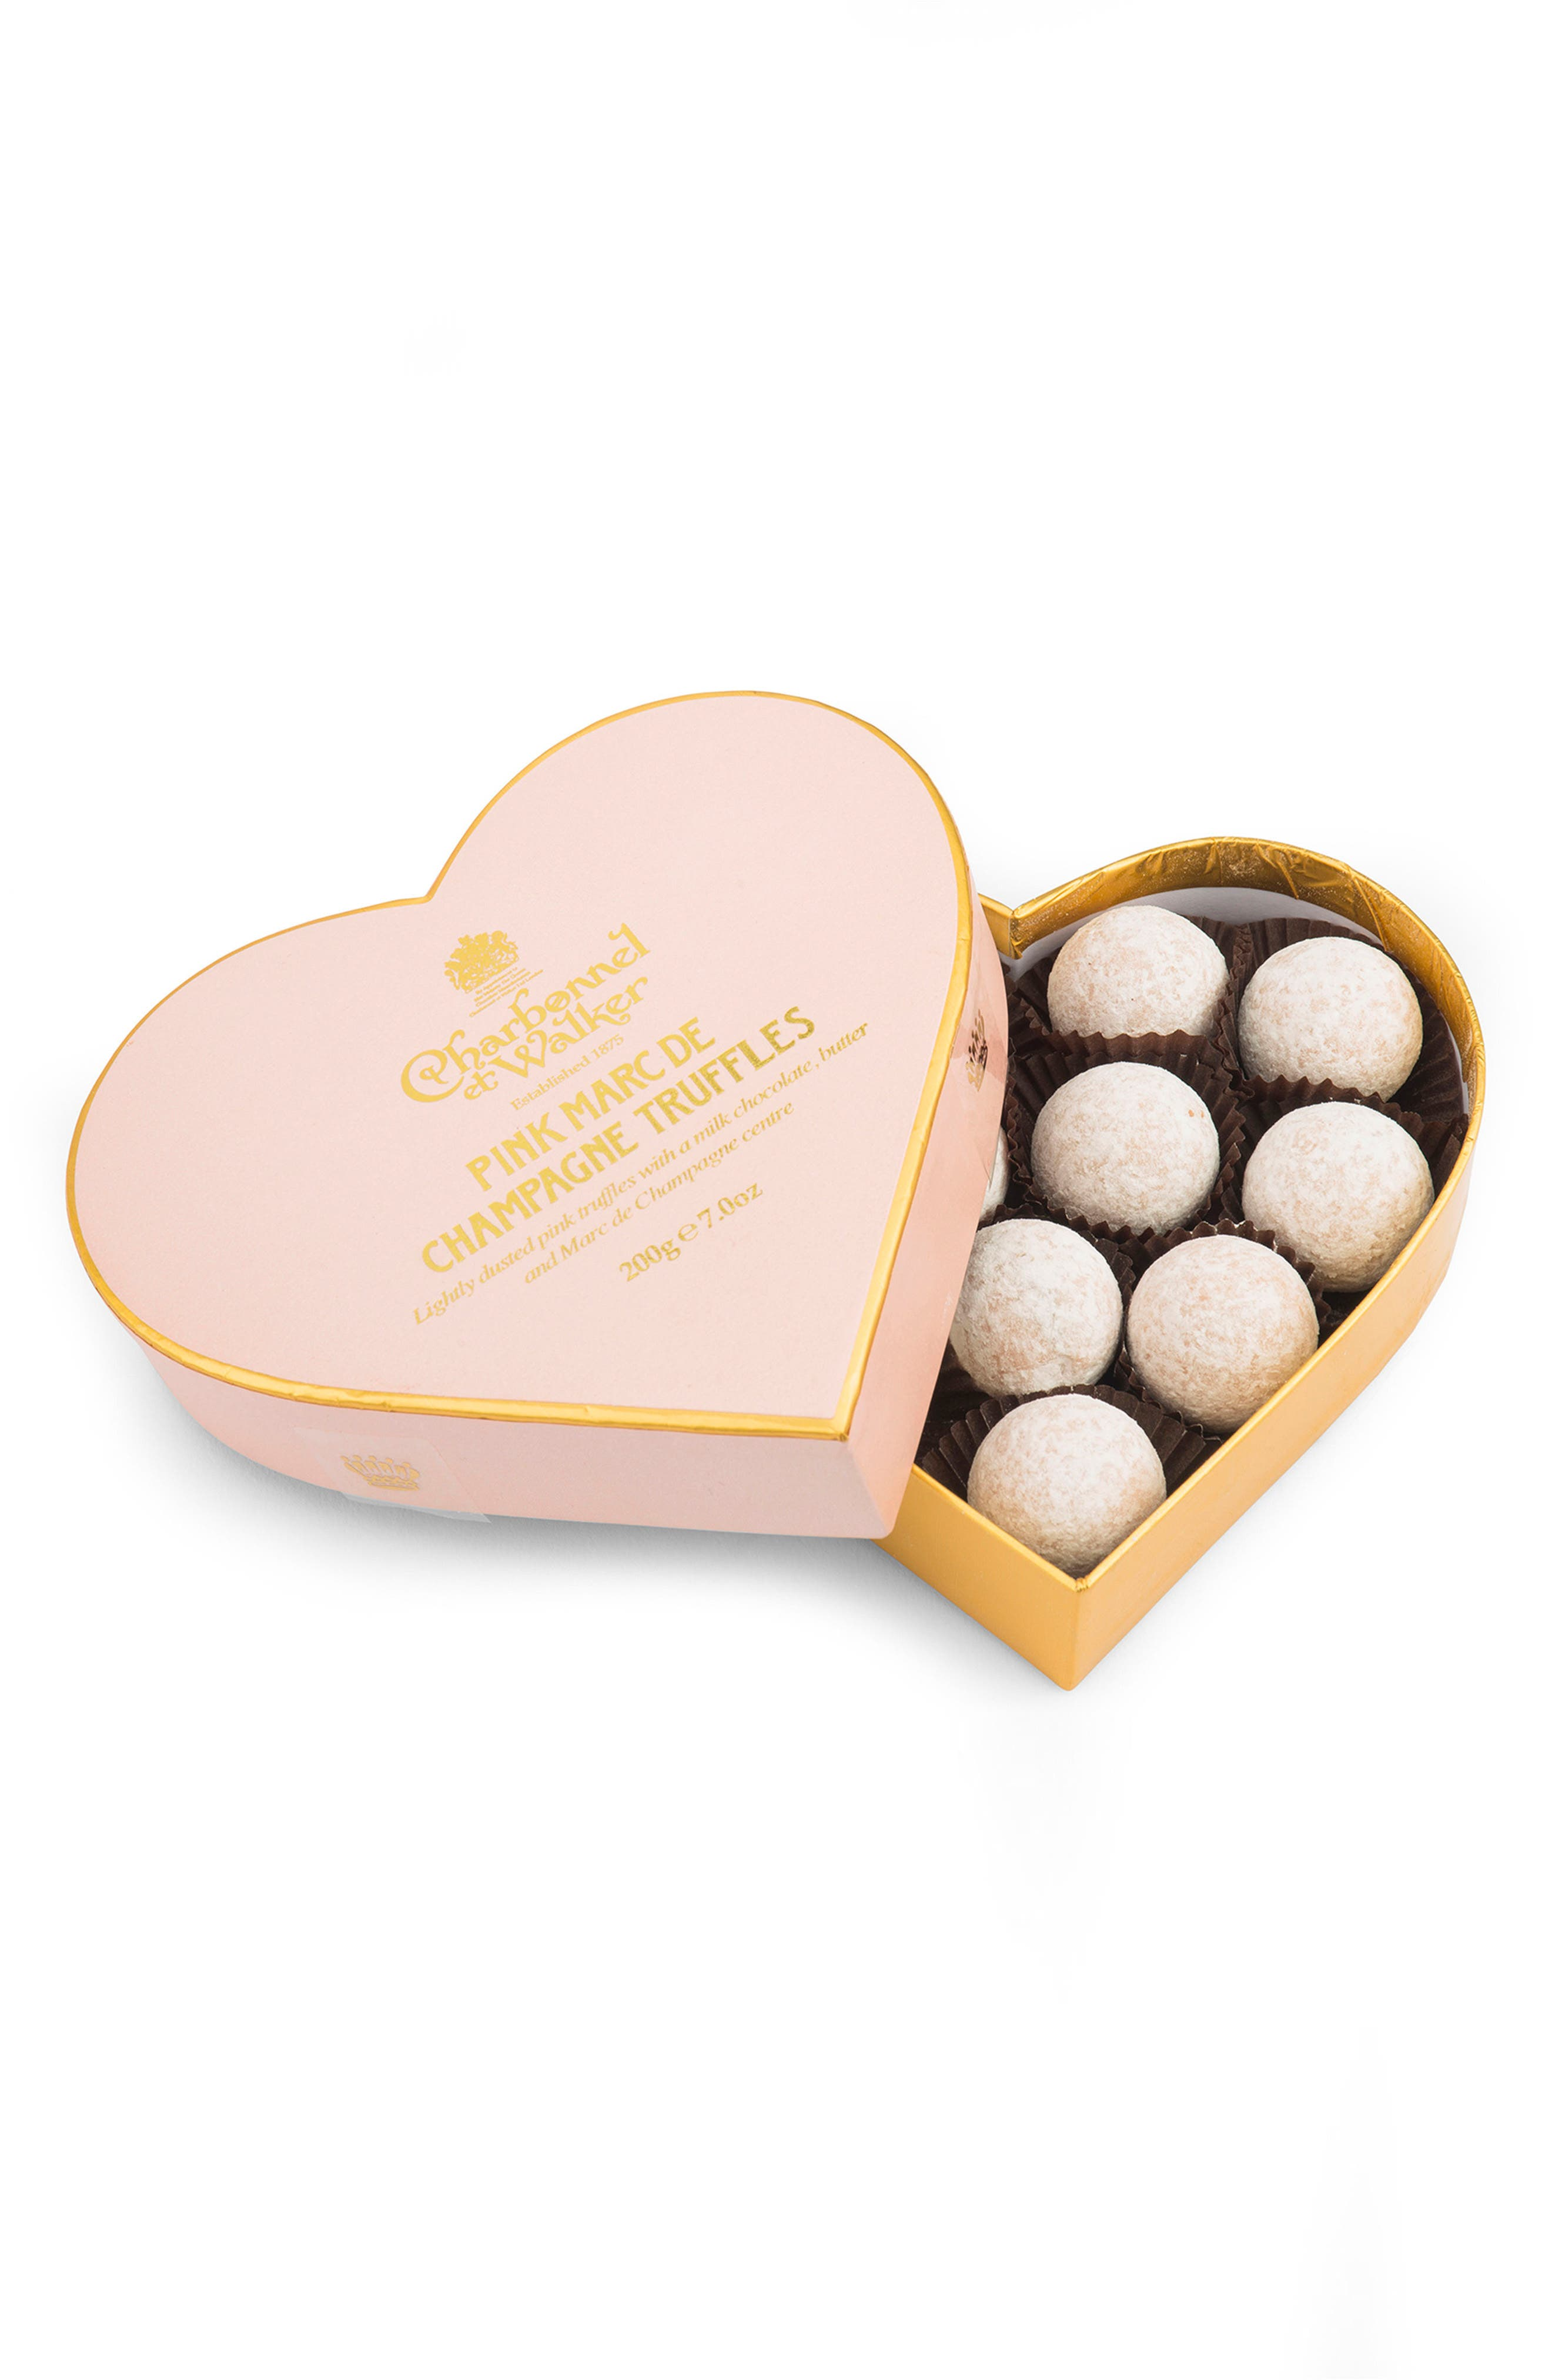 Main Image - Charbonnel et Walker Chocolate Truffles in Heart Shaped Gift Box